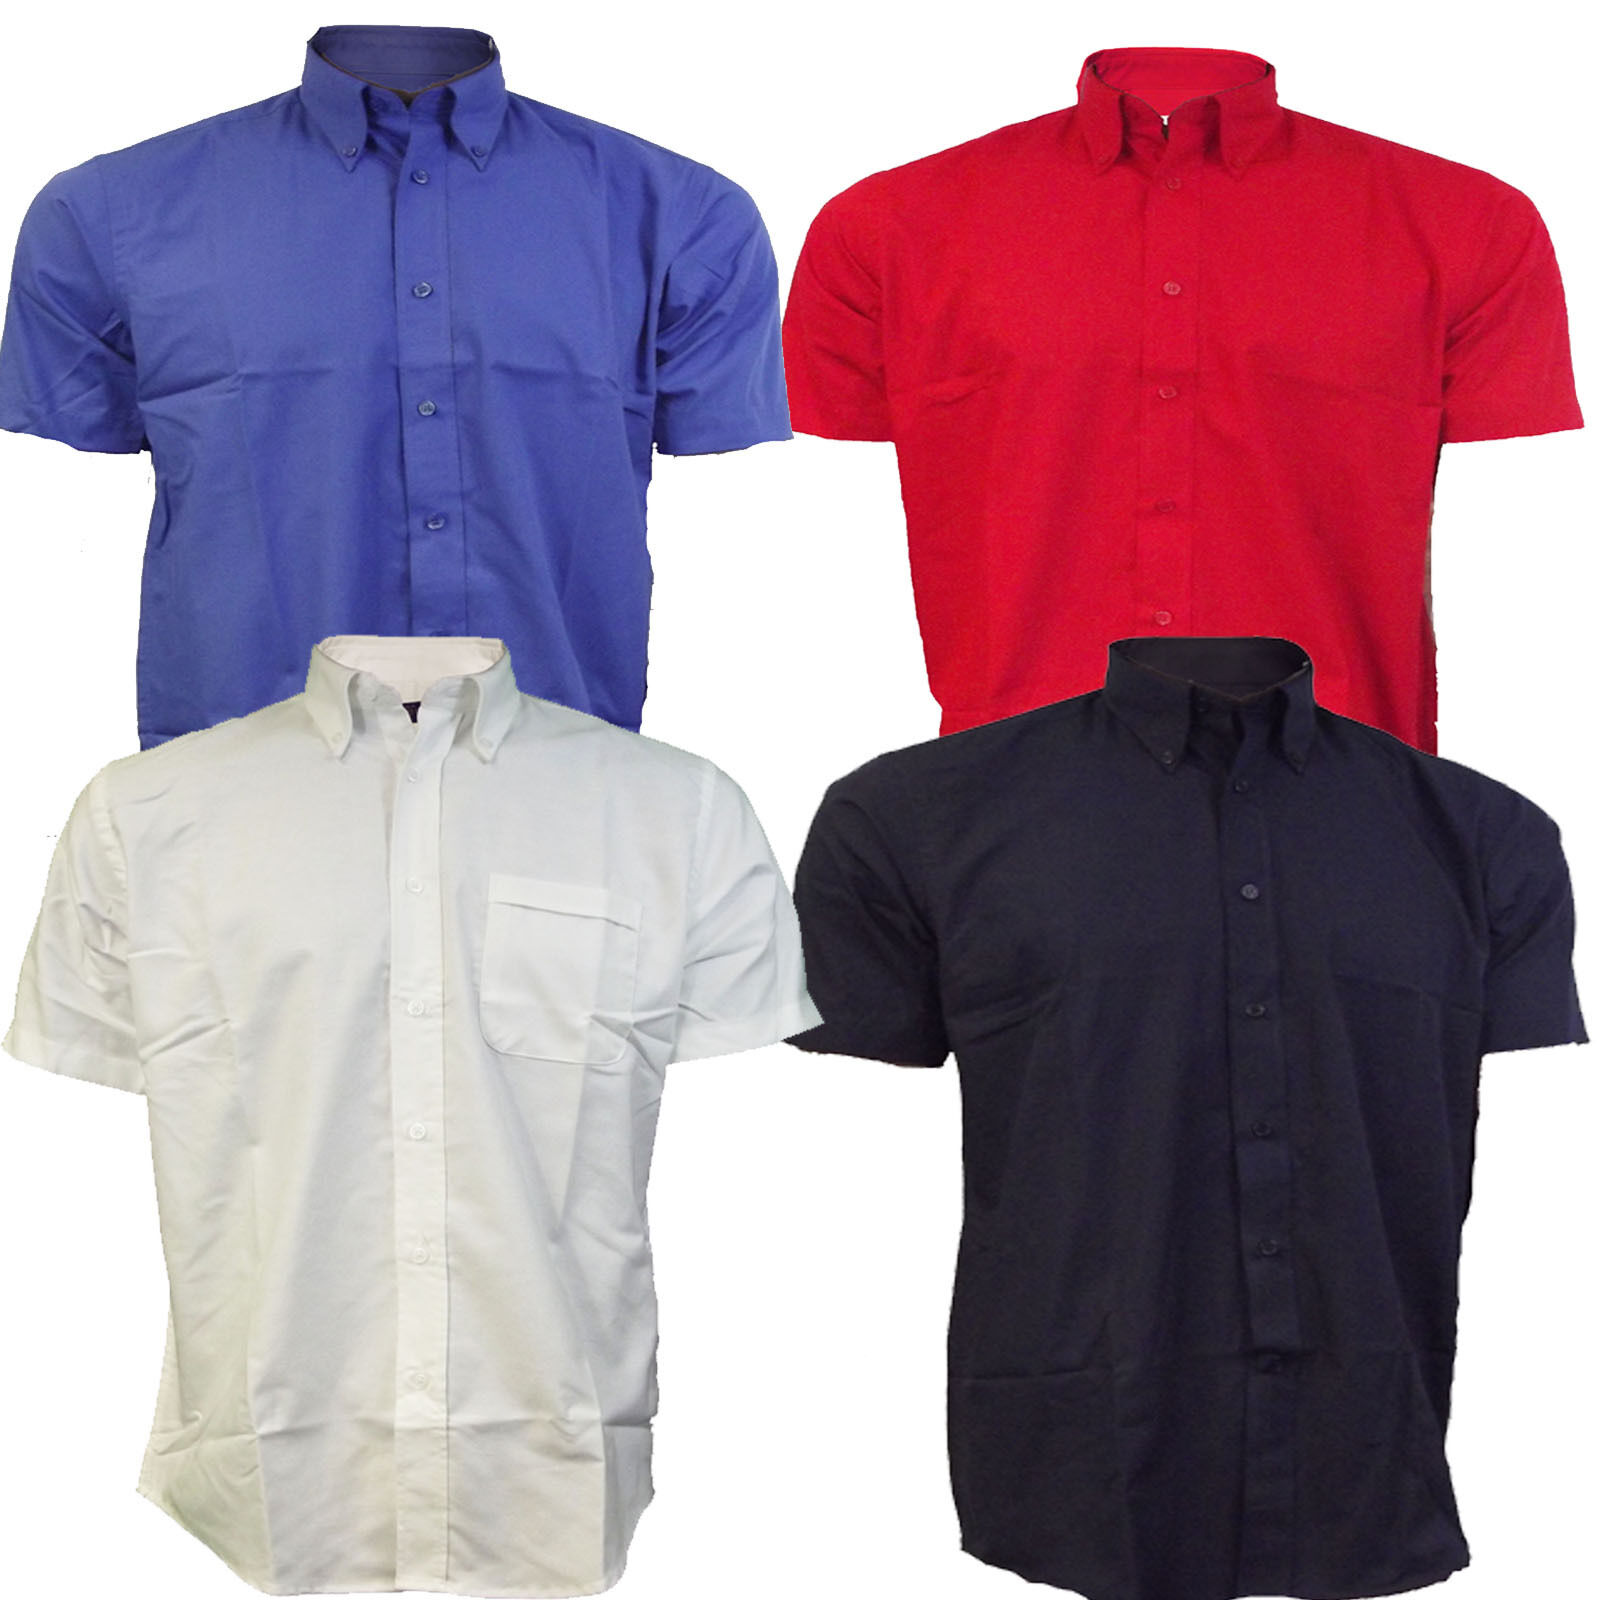 Shirts mens button down collar oxford shirt short sleeve for Mens short sleeve oxford shirt